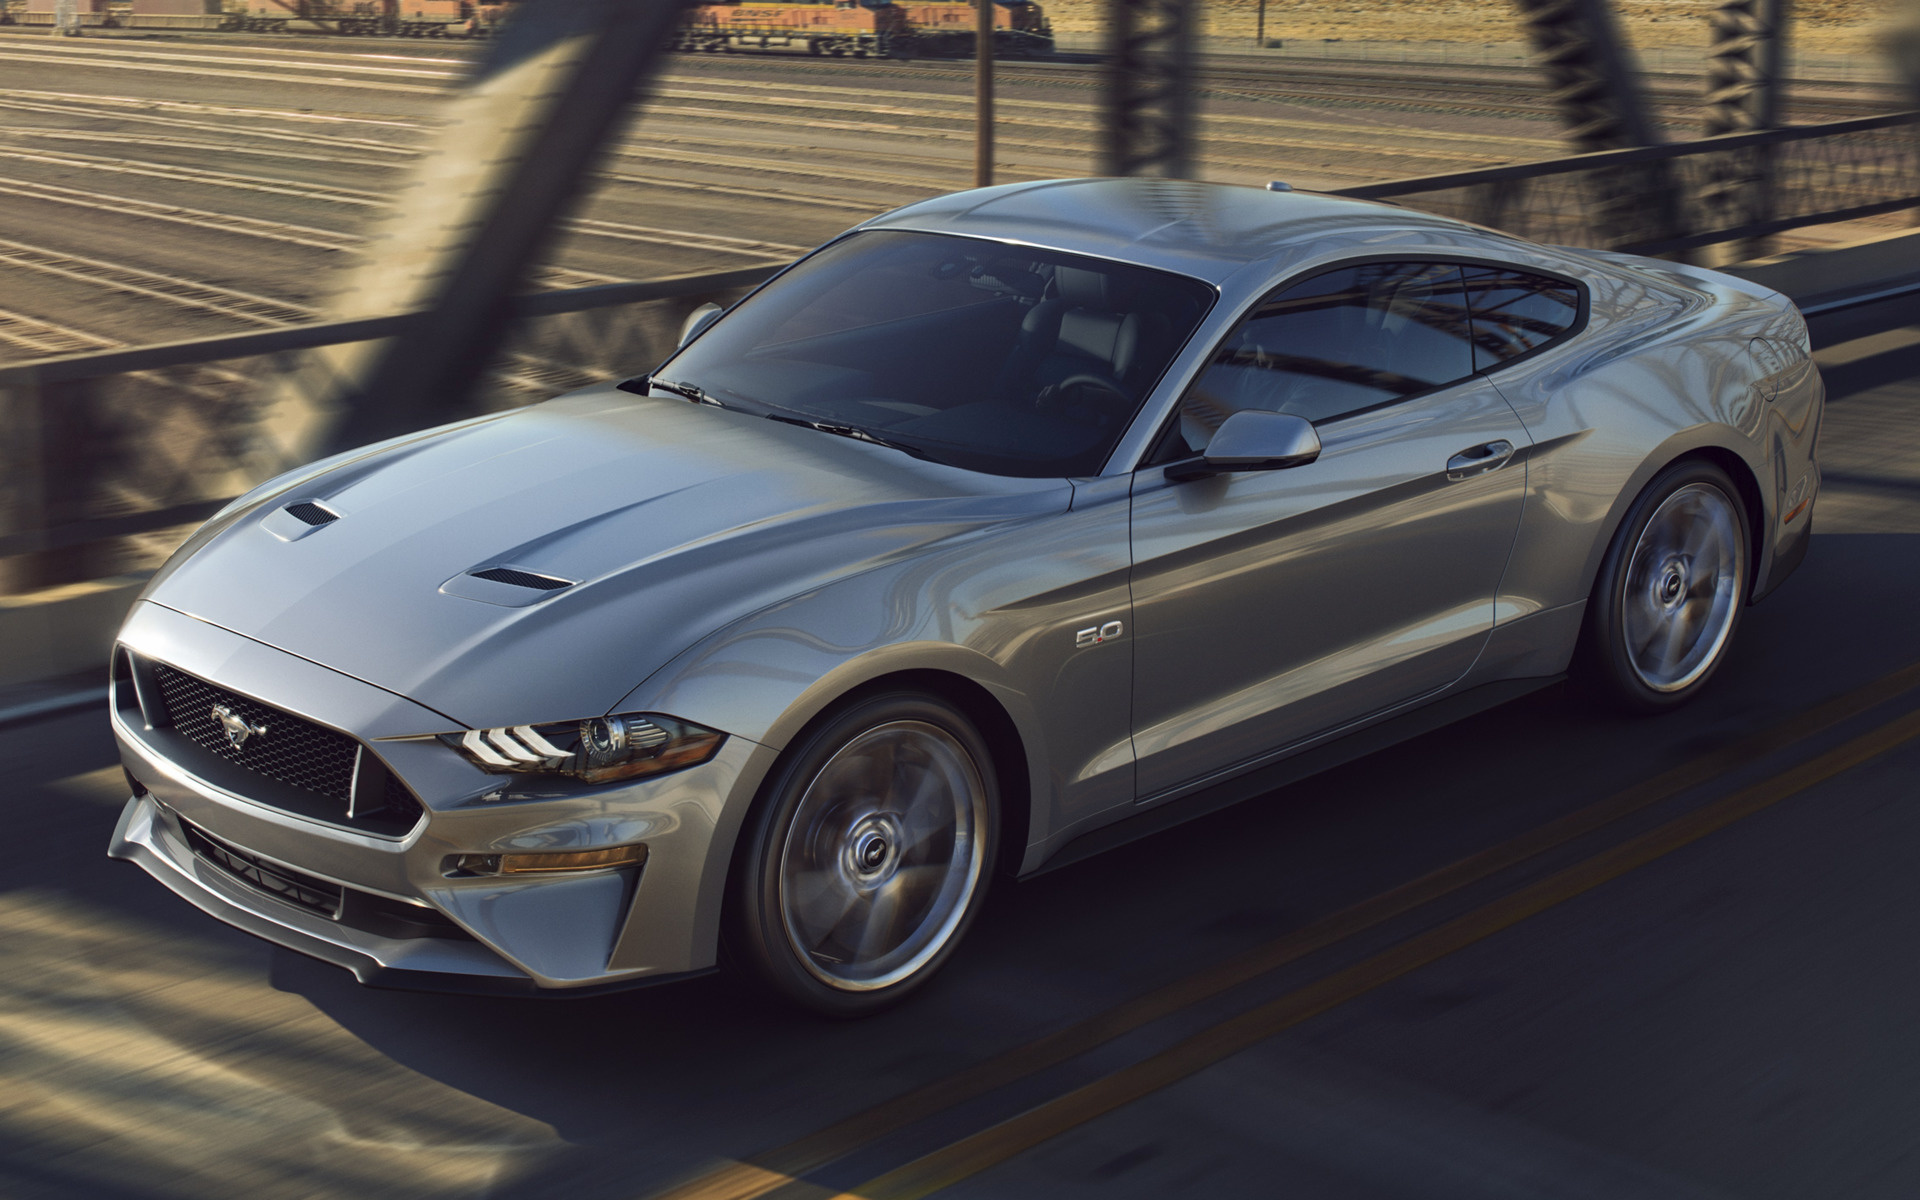 Ford Mustang Race Car Wallpaper 2018 Ford Mustang Gt Wallpapers And Hd Images Car Pixel